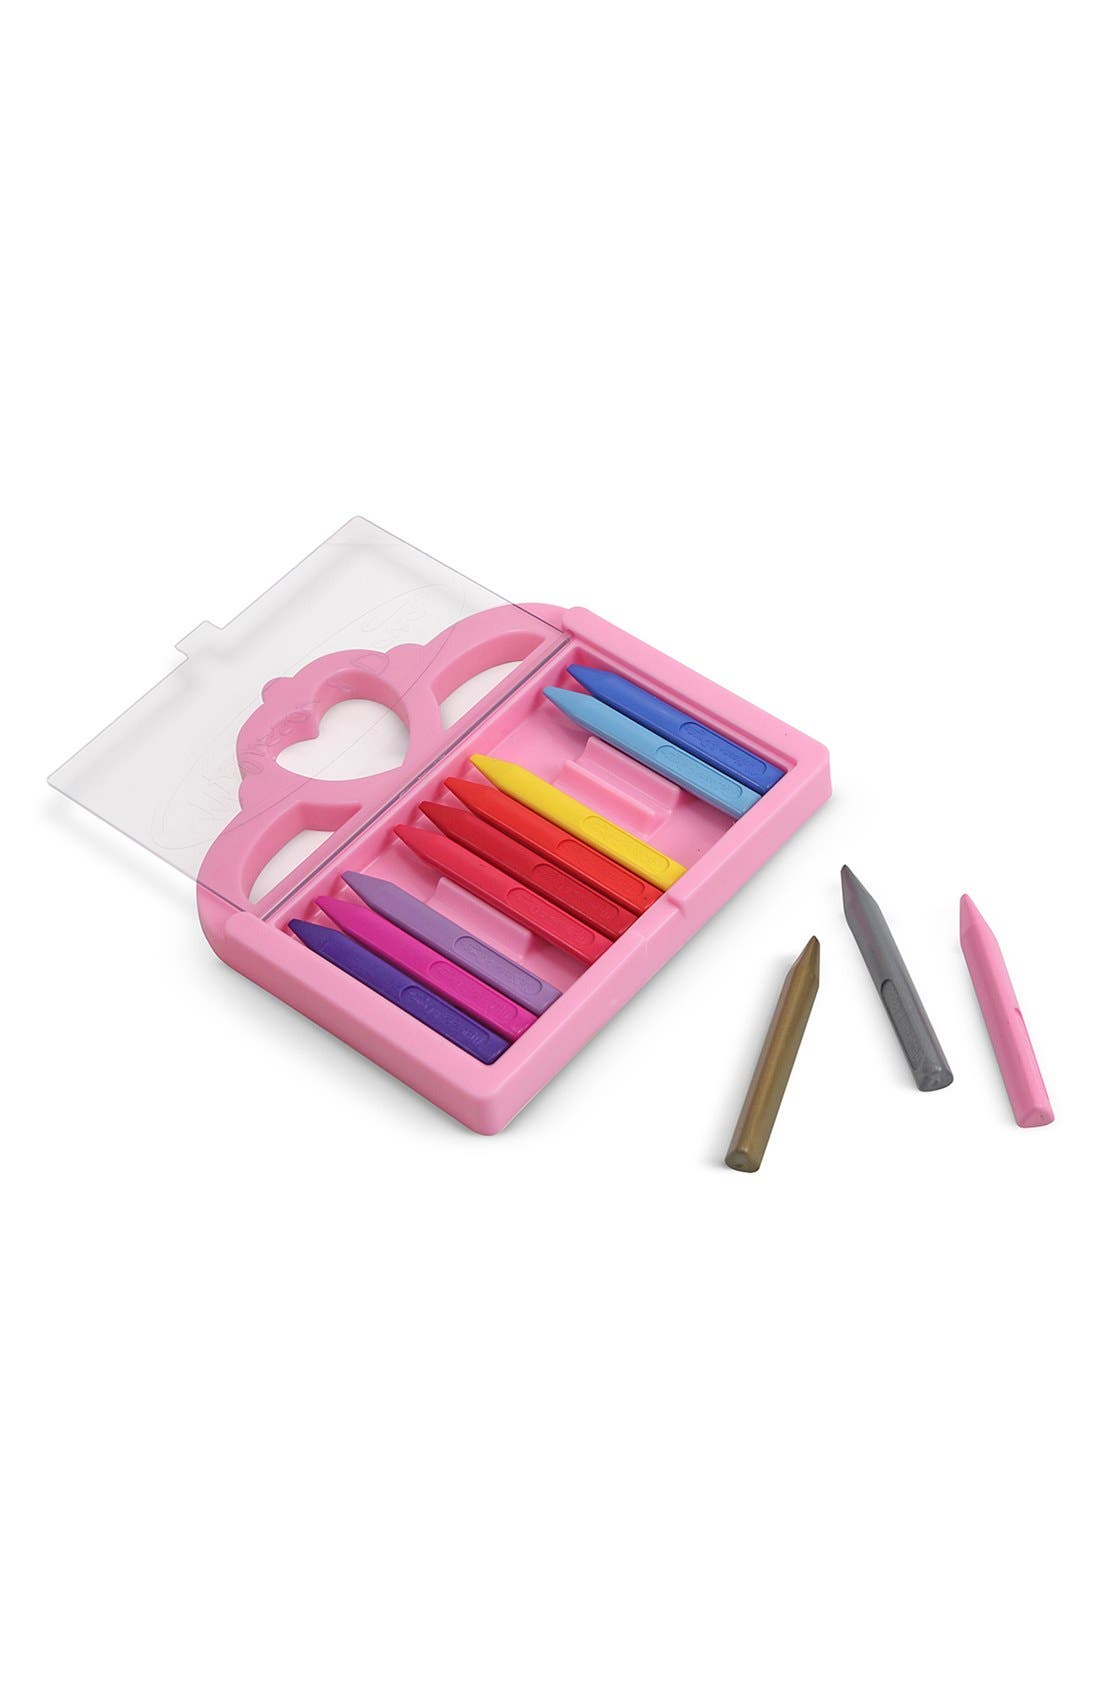 Main Image - Melissa & Doug 'Princess' Crayon Set